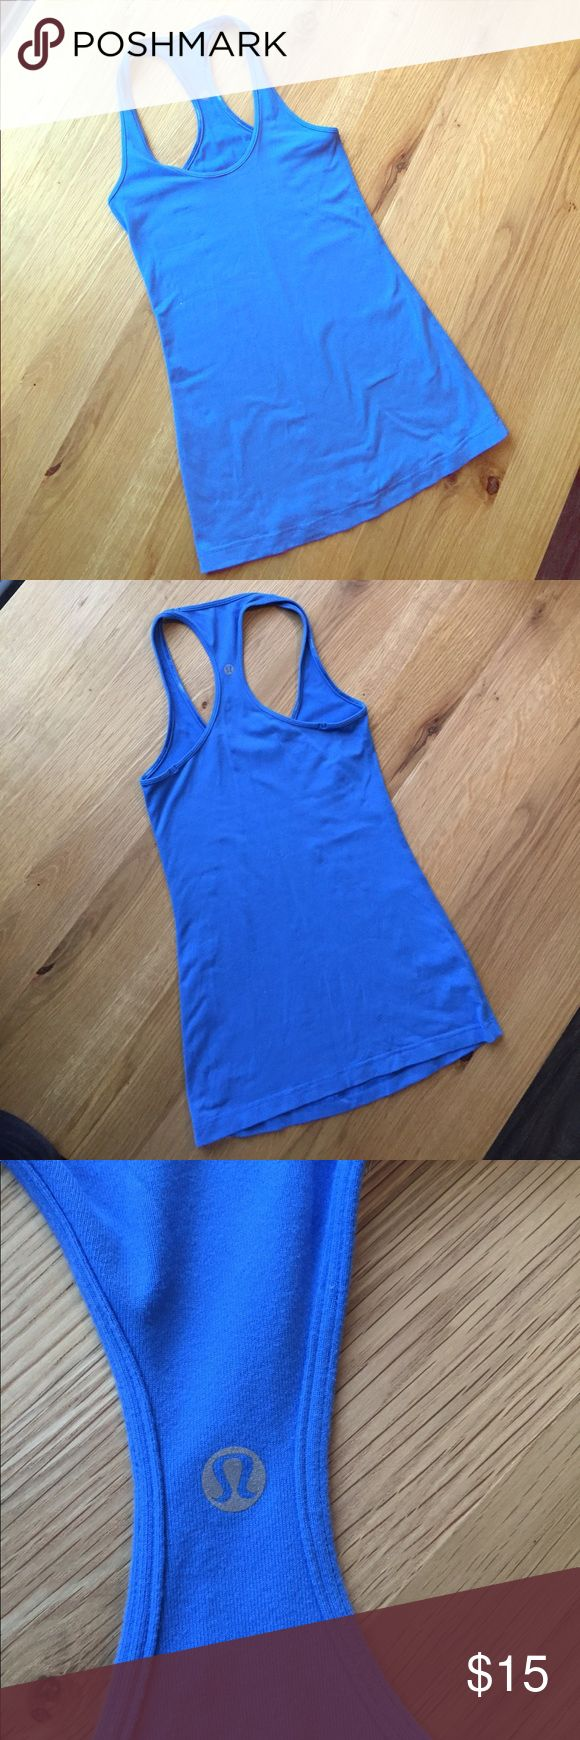 lululemon racertrack blue tank top -Made of light Luon fabric; wicks away sweat and a lot of stretch.   -In decent condition; I'd say say 6.5 out of 10. Some piling, as can be seen in the closeup photos. Blue is more like the one shown on the cover photo.   -I removed the tag (like we all do); it's a size 2. lululemon athletica Tops Tank Tops